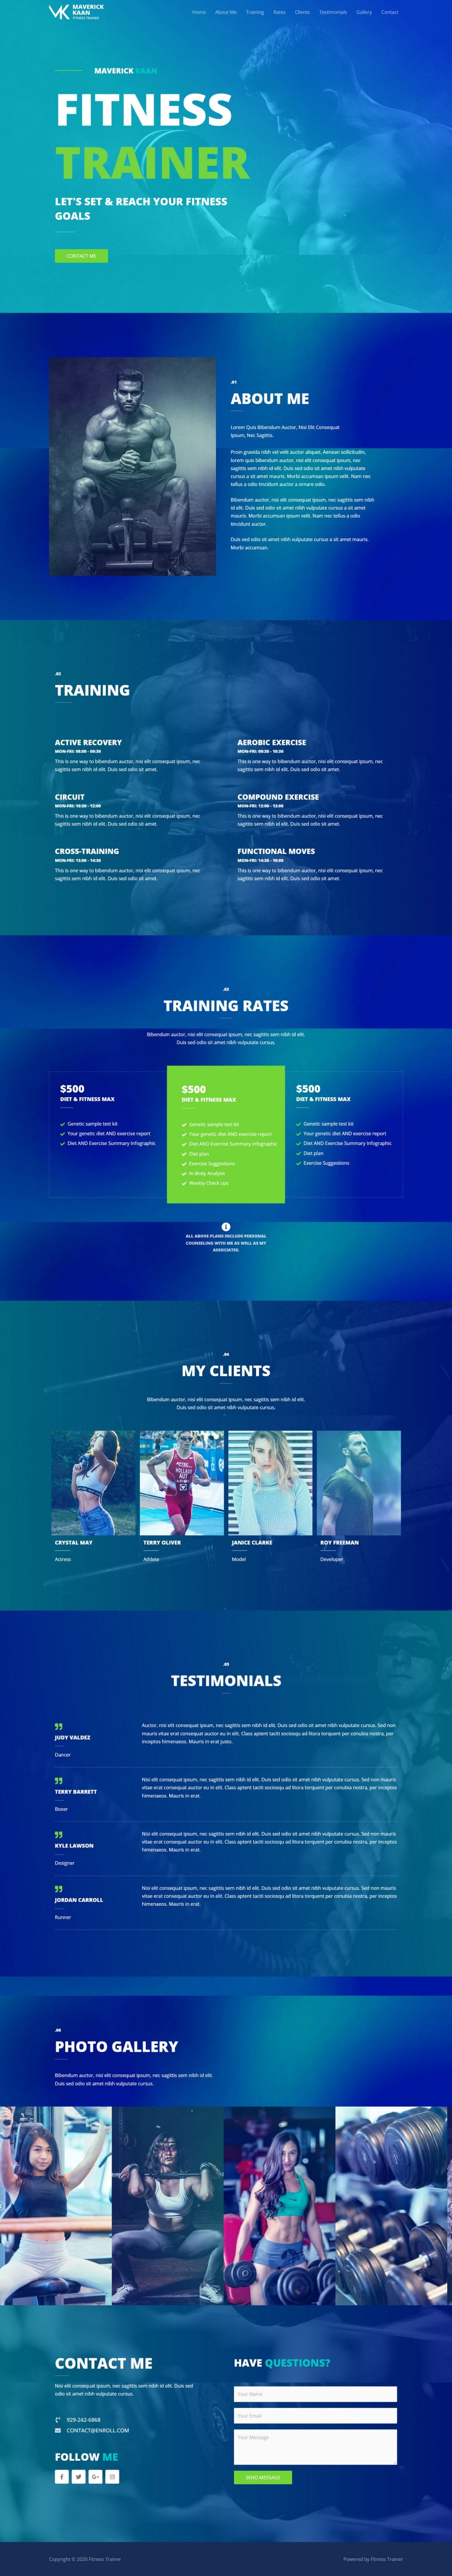 Fagowi.com Website Design Templates For Fitness Trainer Male - Home Page Image